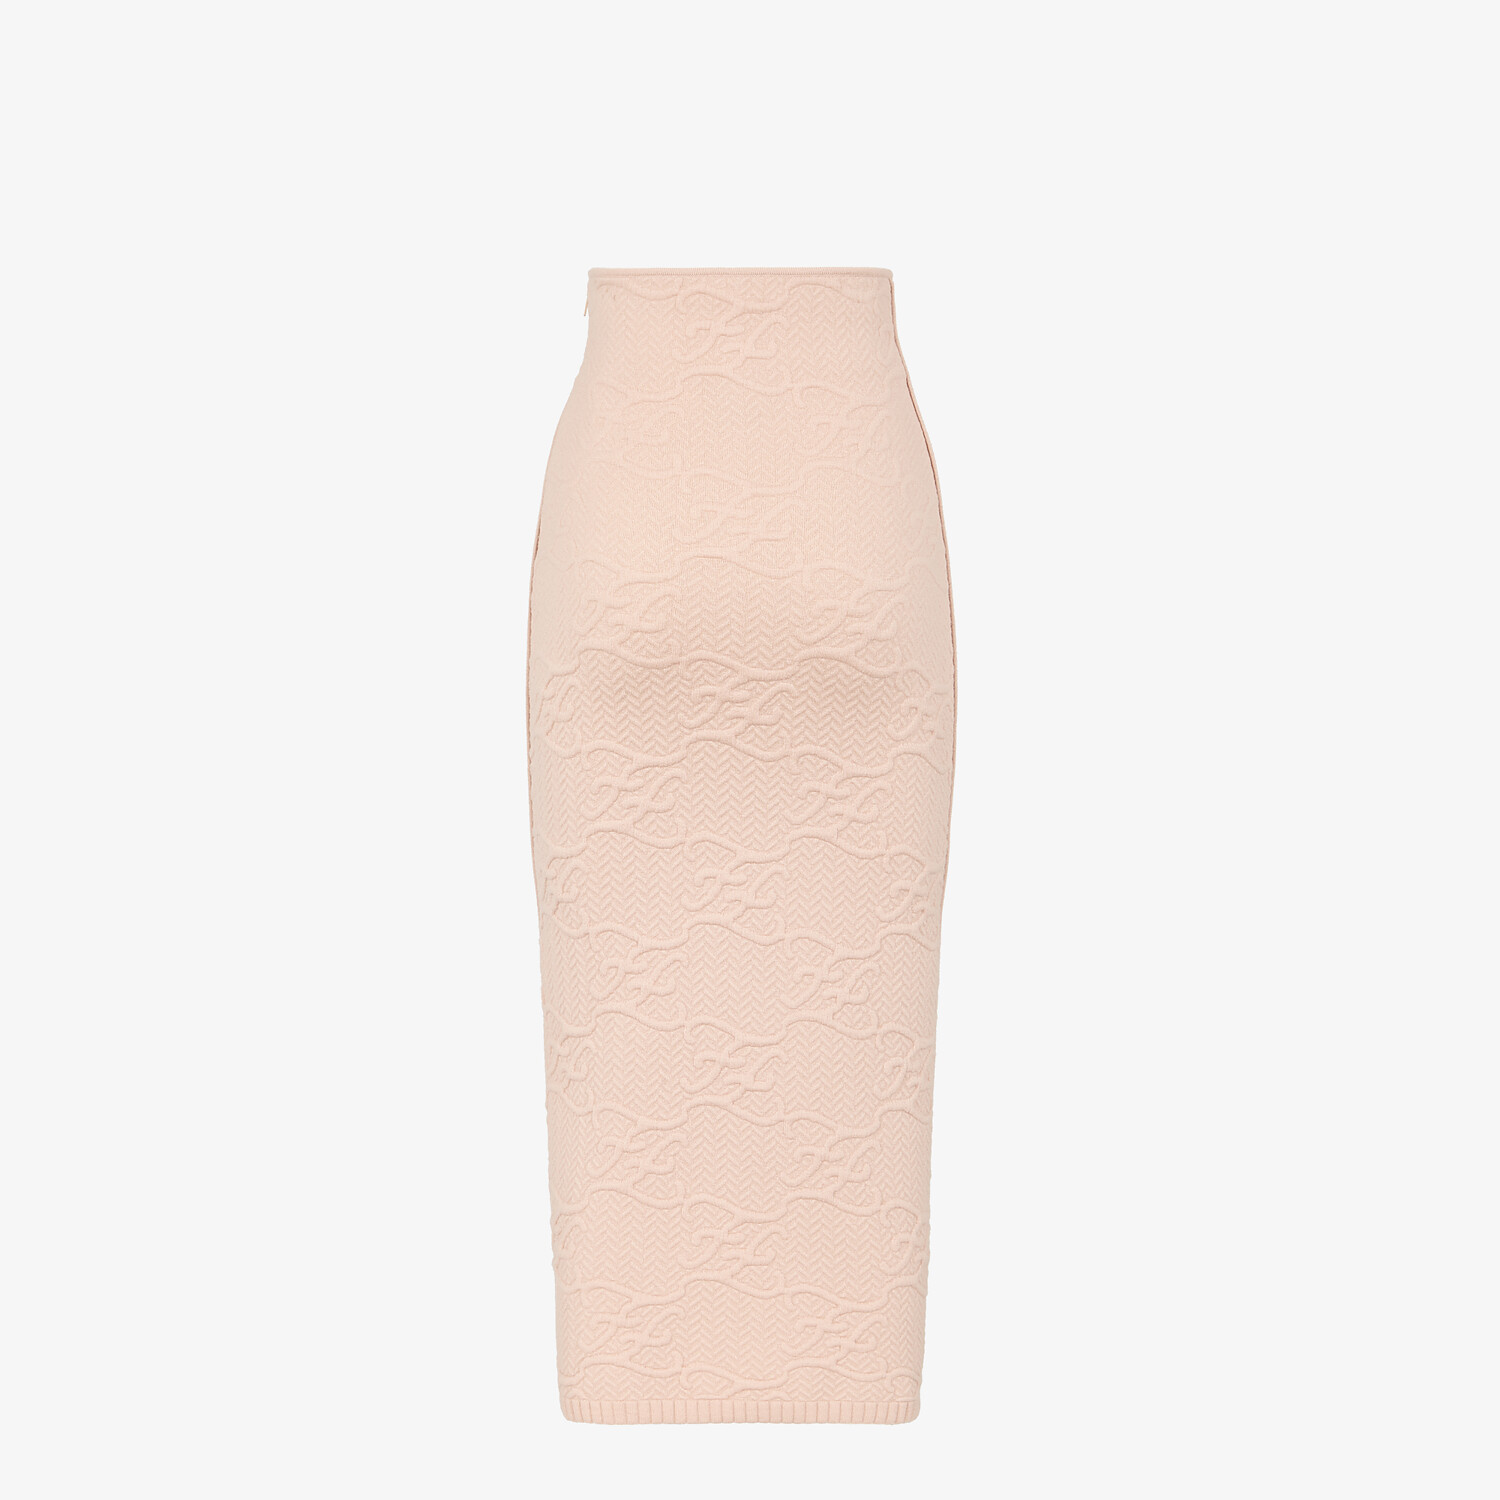 FENDI SKIRT - Pink wool and cashmere skirt - view 2 detail